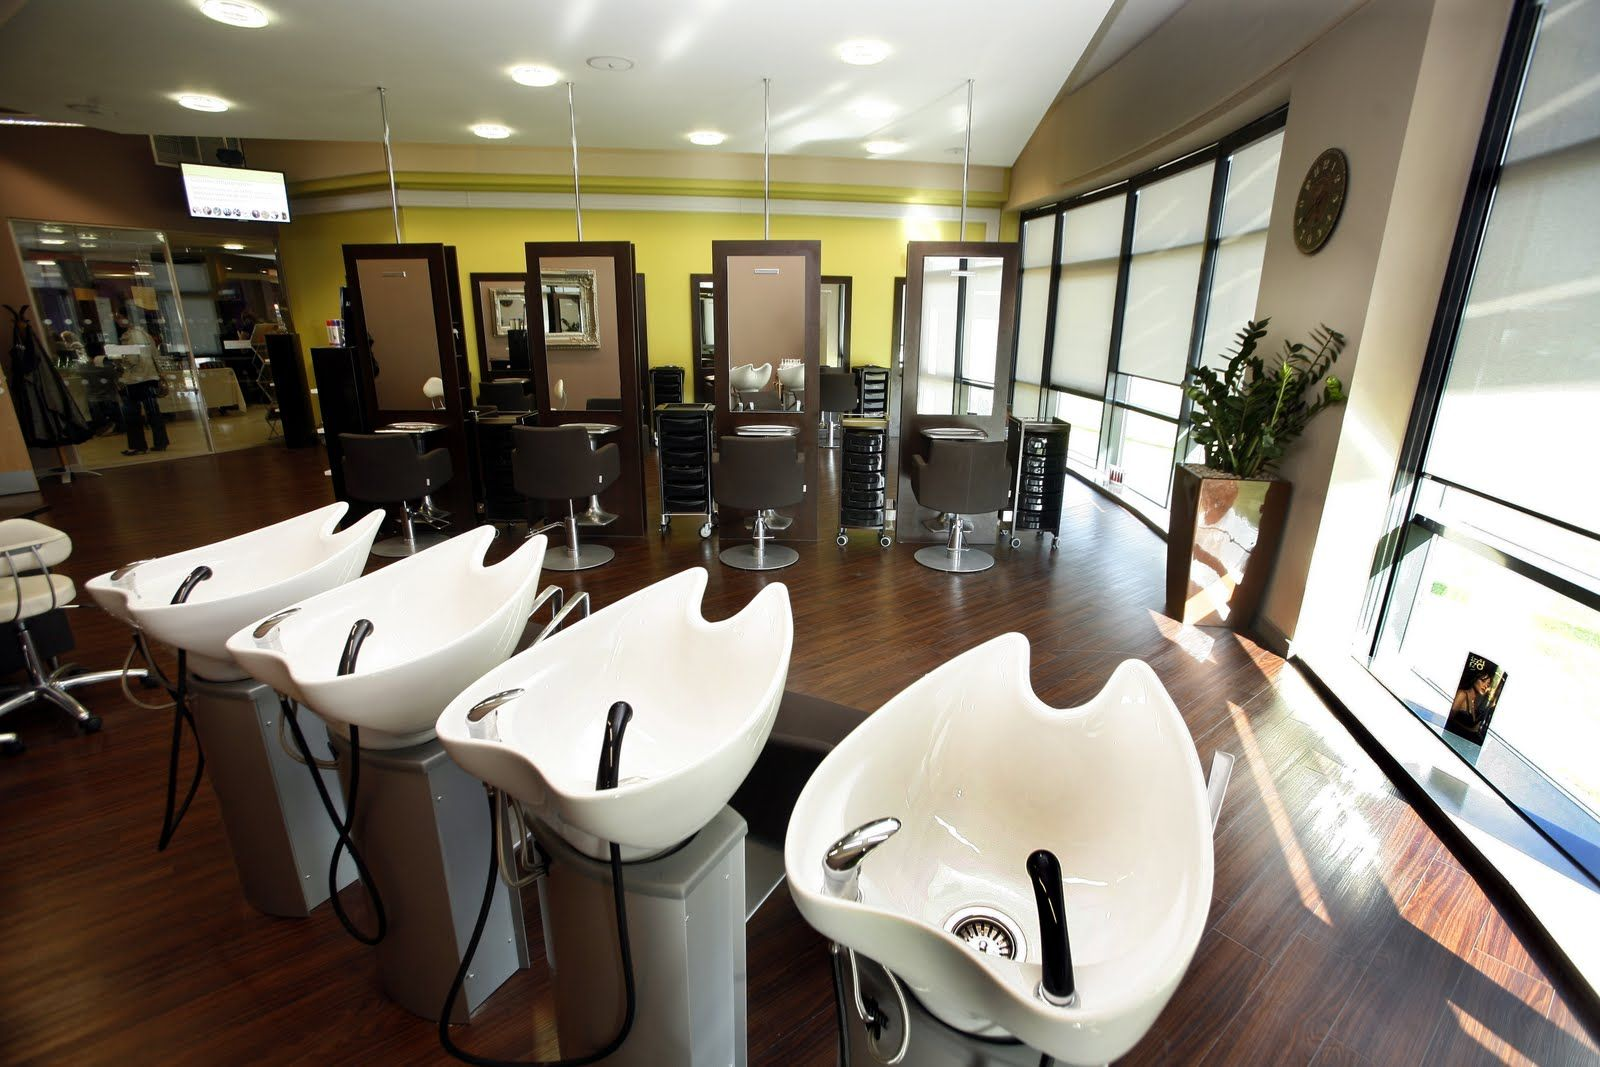 Beauty salon decorating ideas photos february 5 2013 for Beauty salon layout